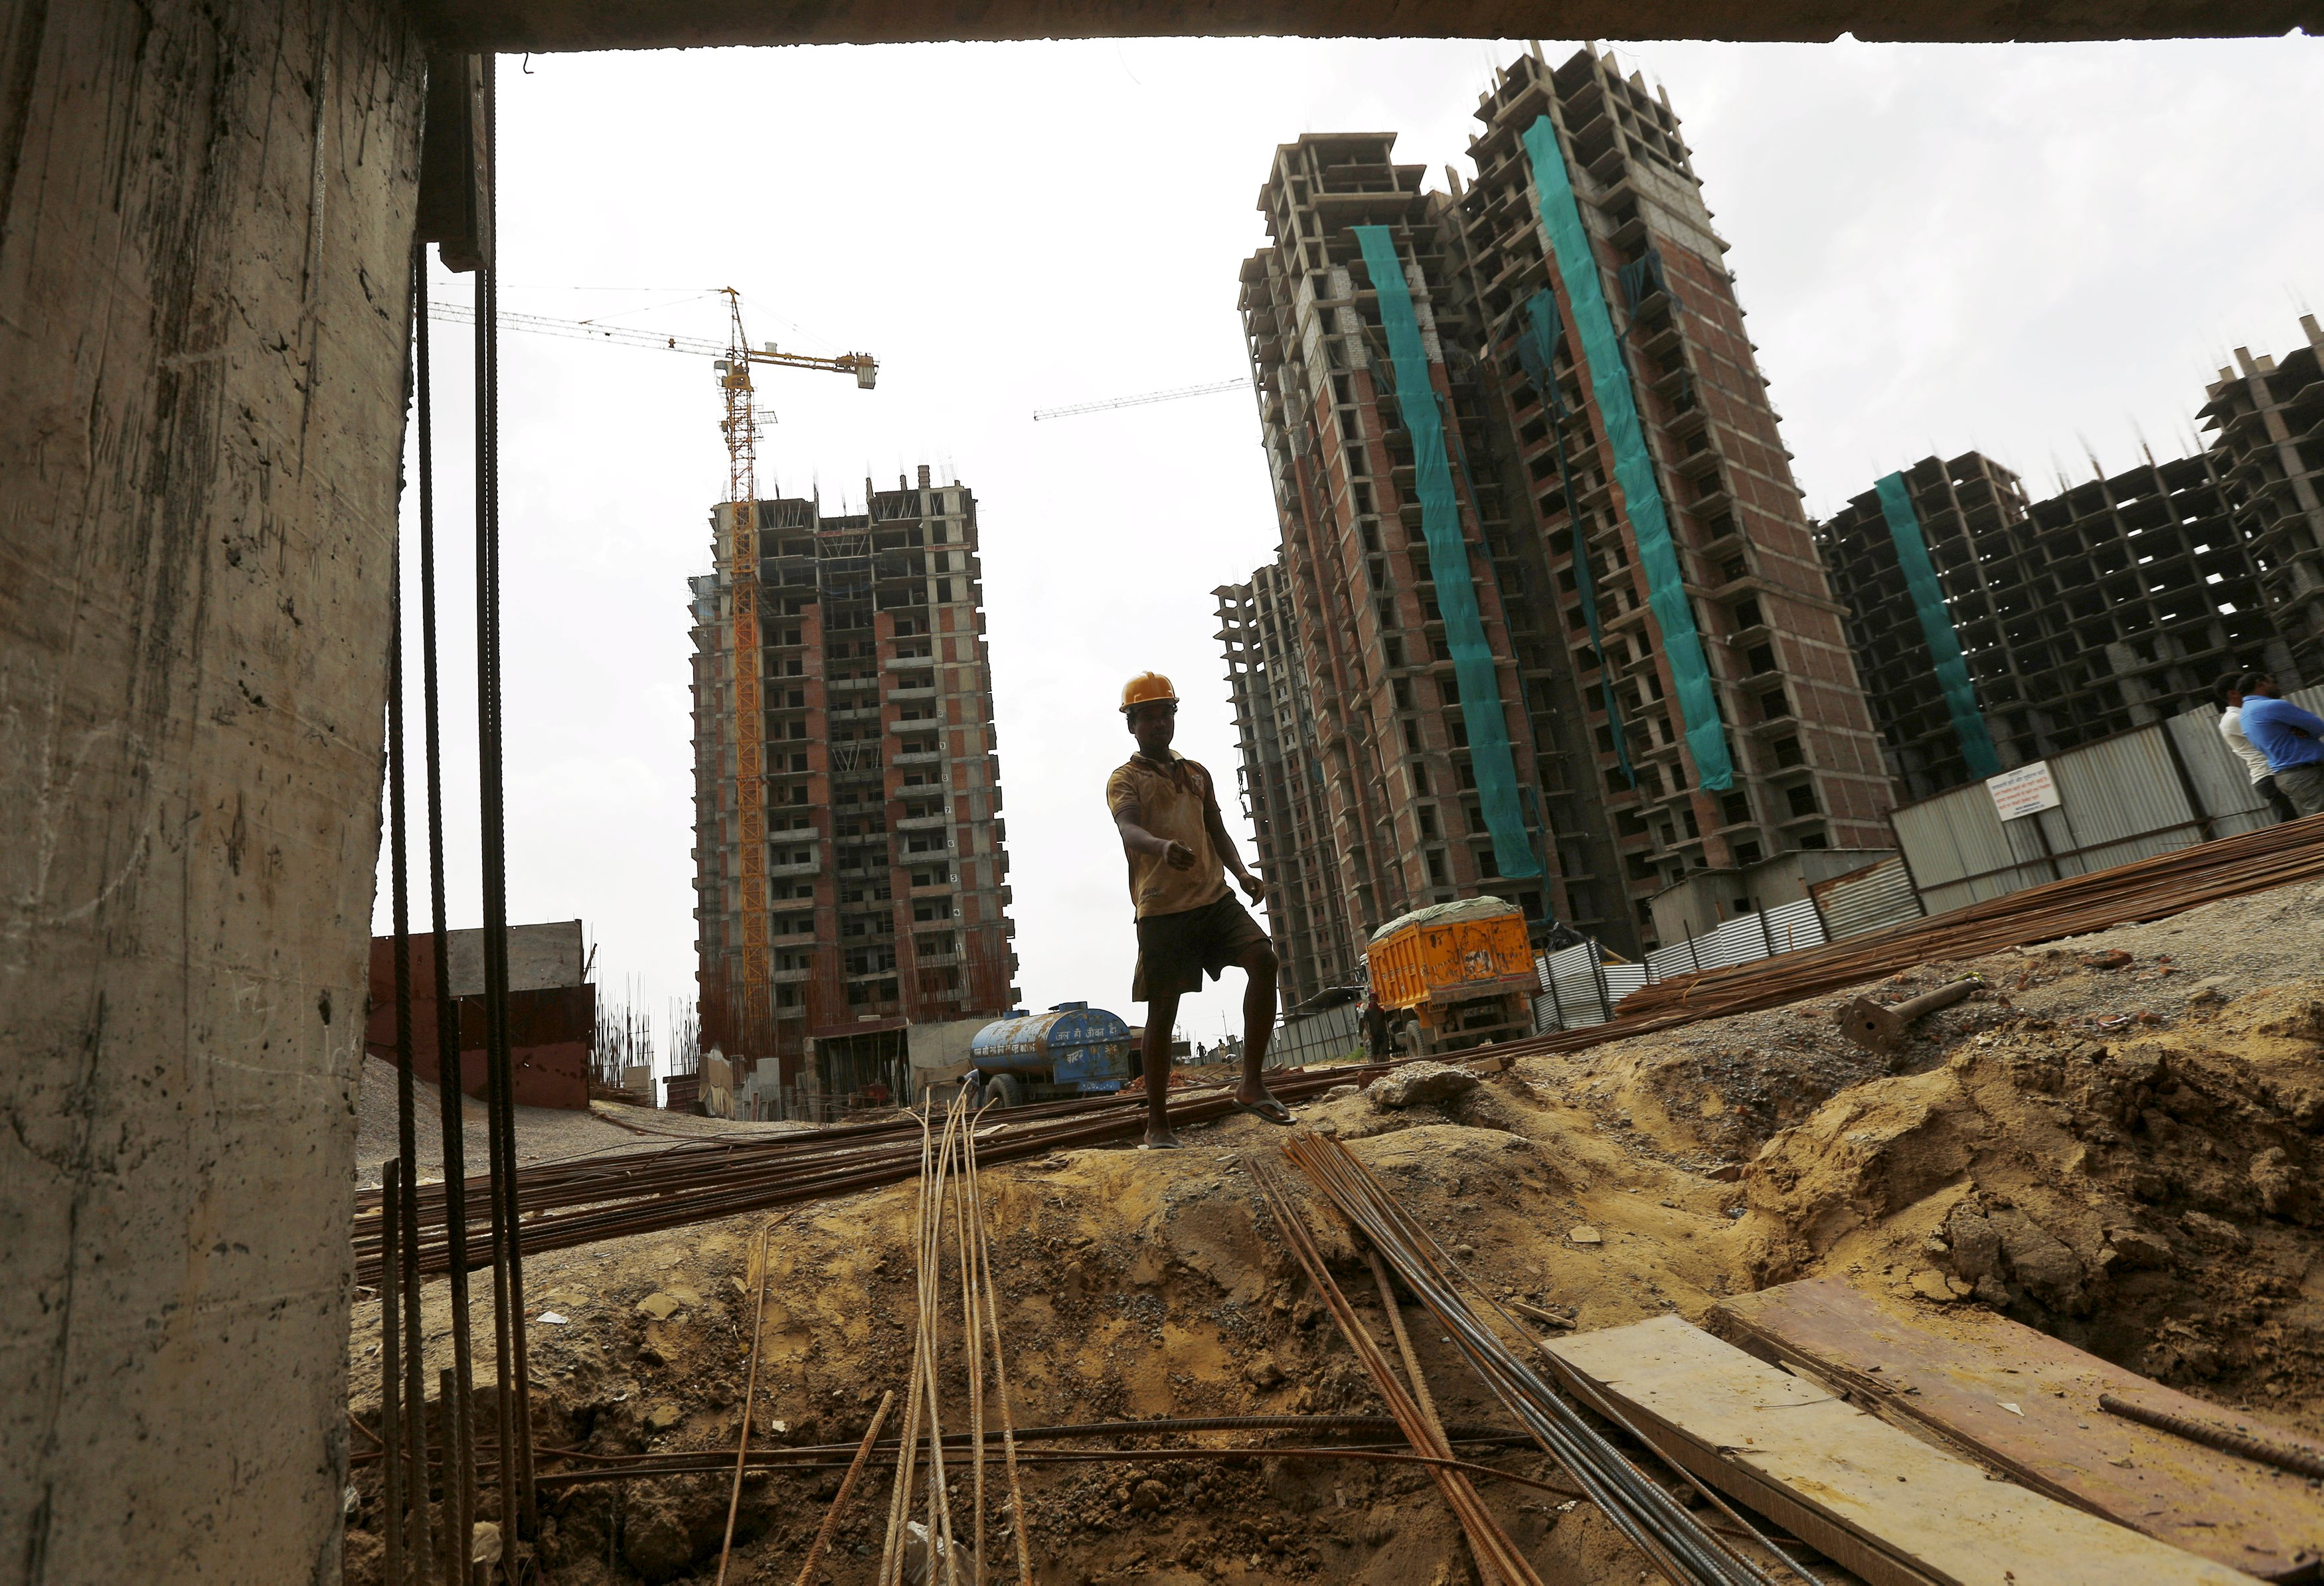 A labourer works at the construction site of a residential complex in Noida on the outskirts of New Delhi, India. Photo: Reuters